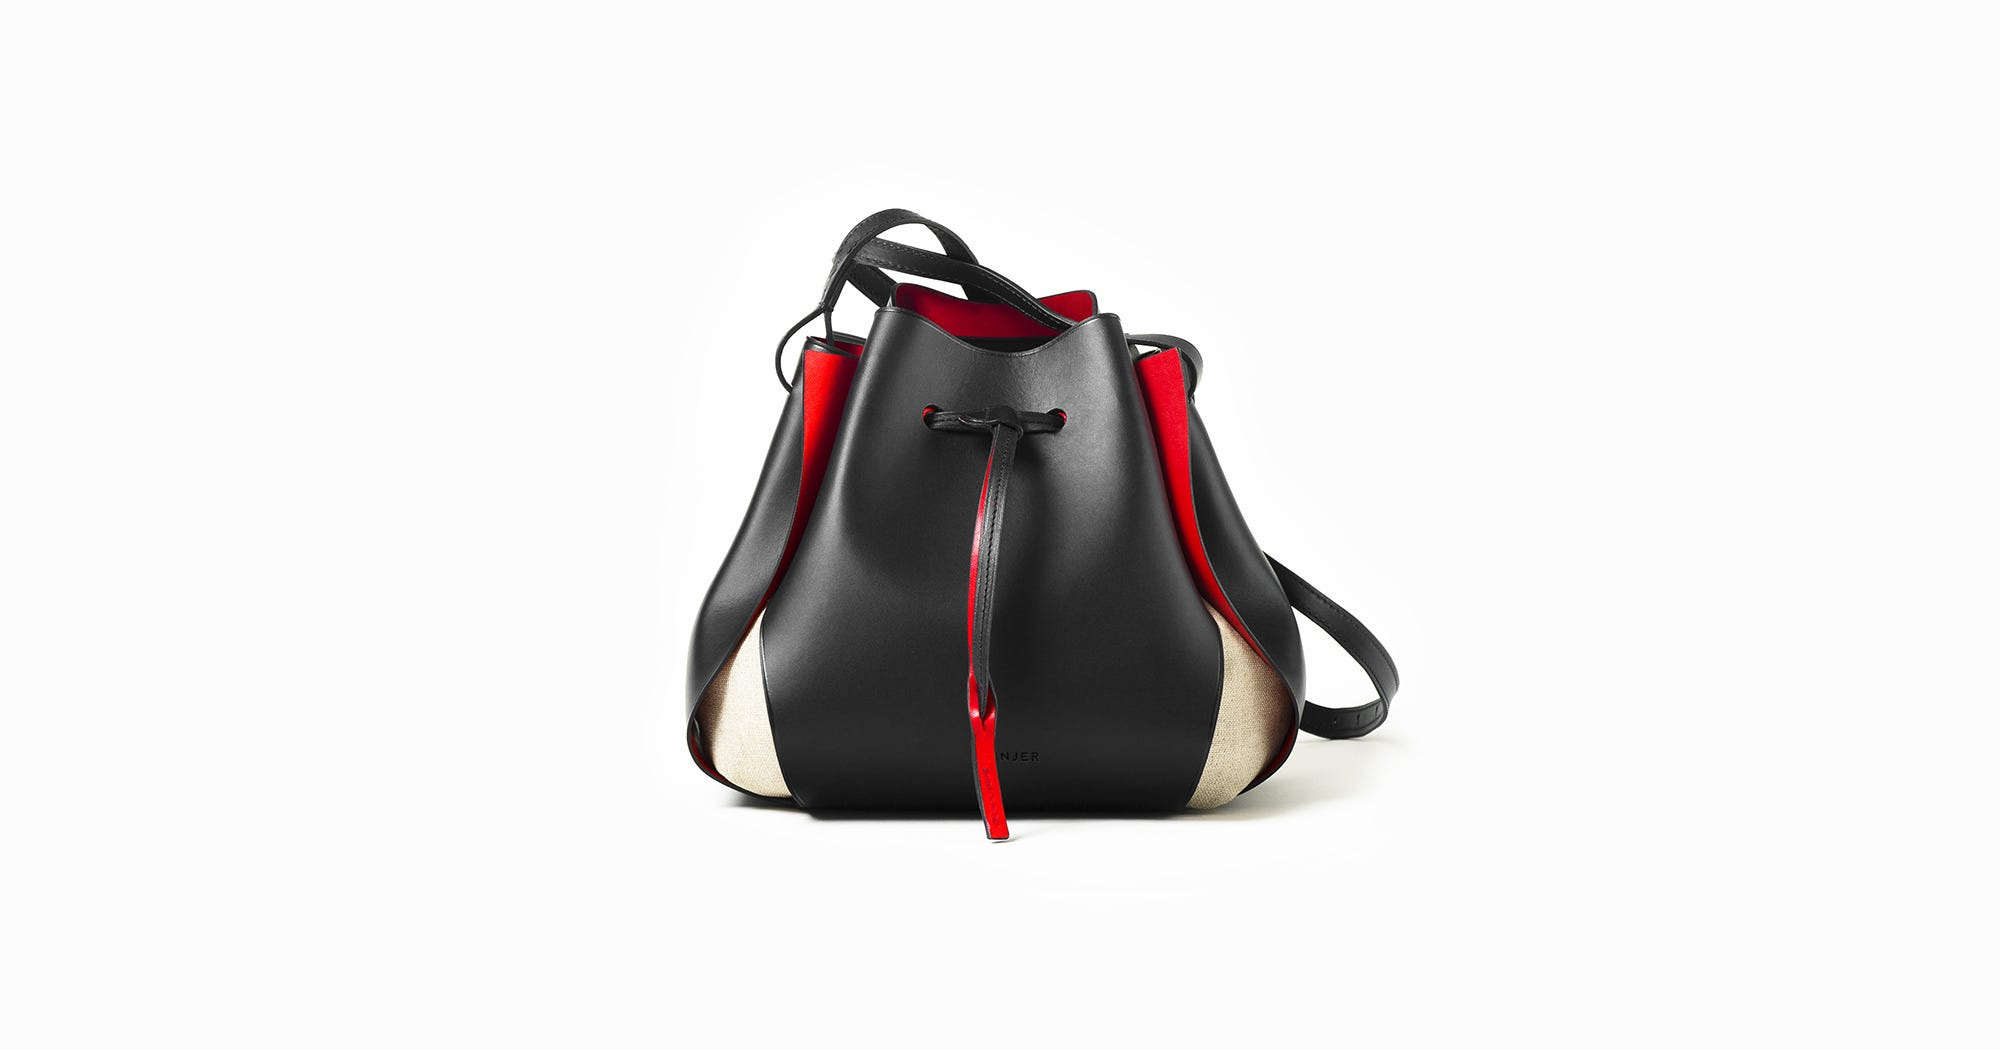 Flipboard  These Handbags Are Going To Sell Out As Soon As They Launch 6df643a862a9a